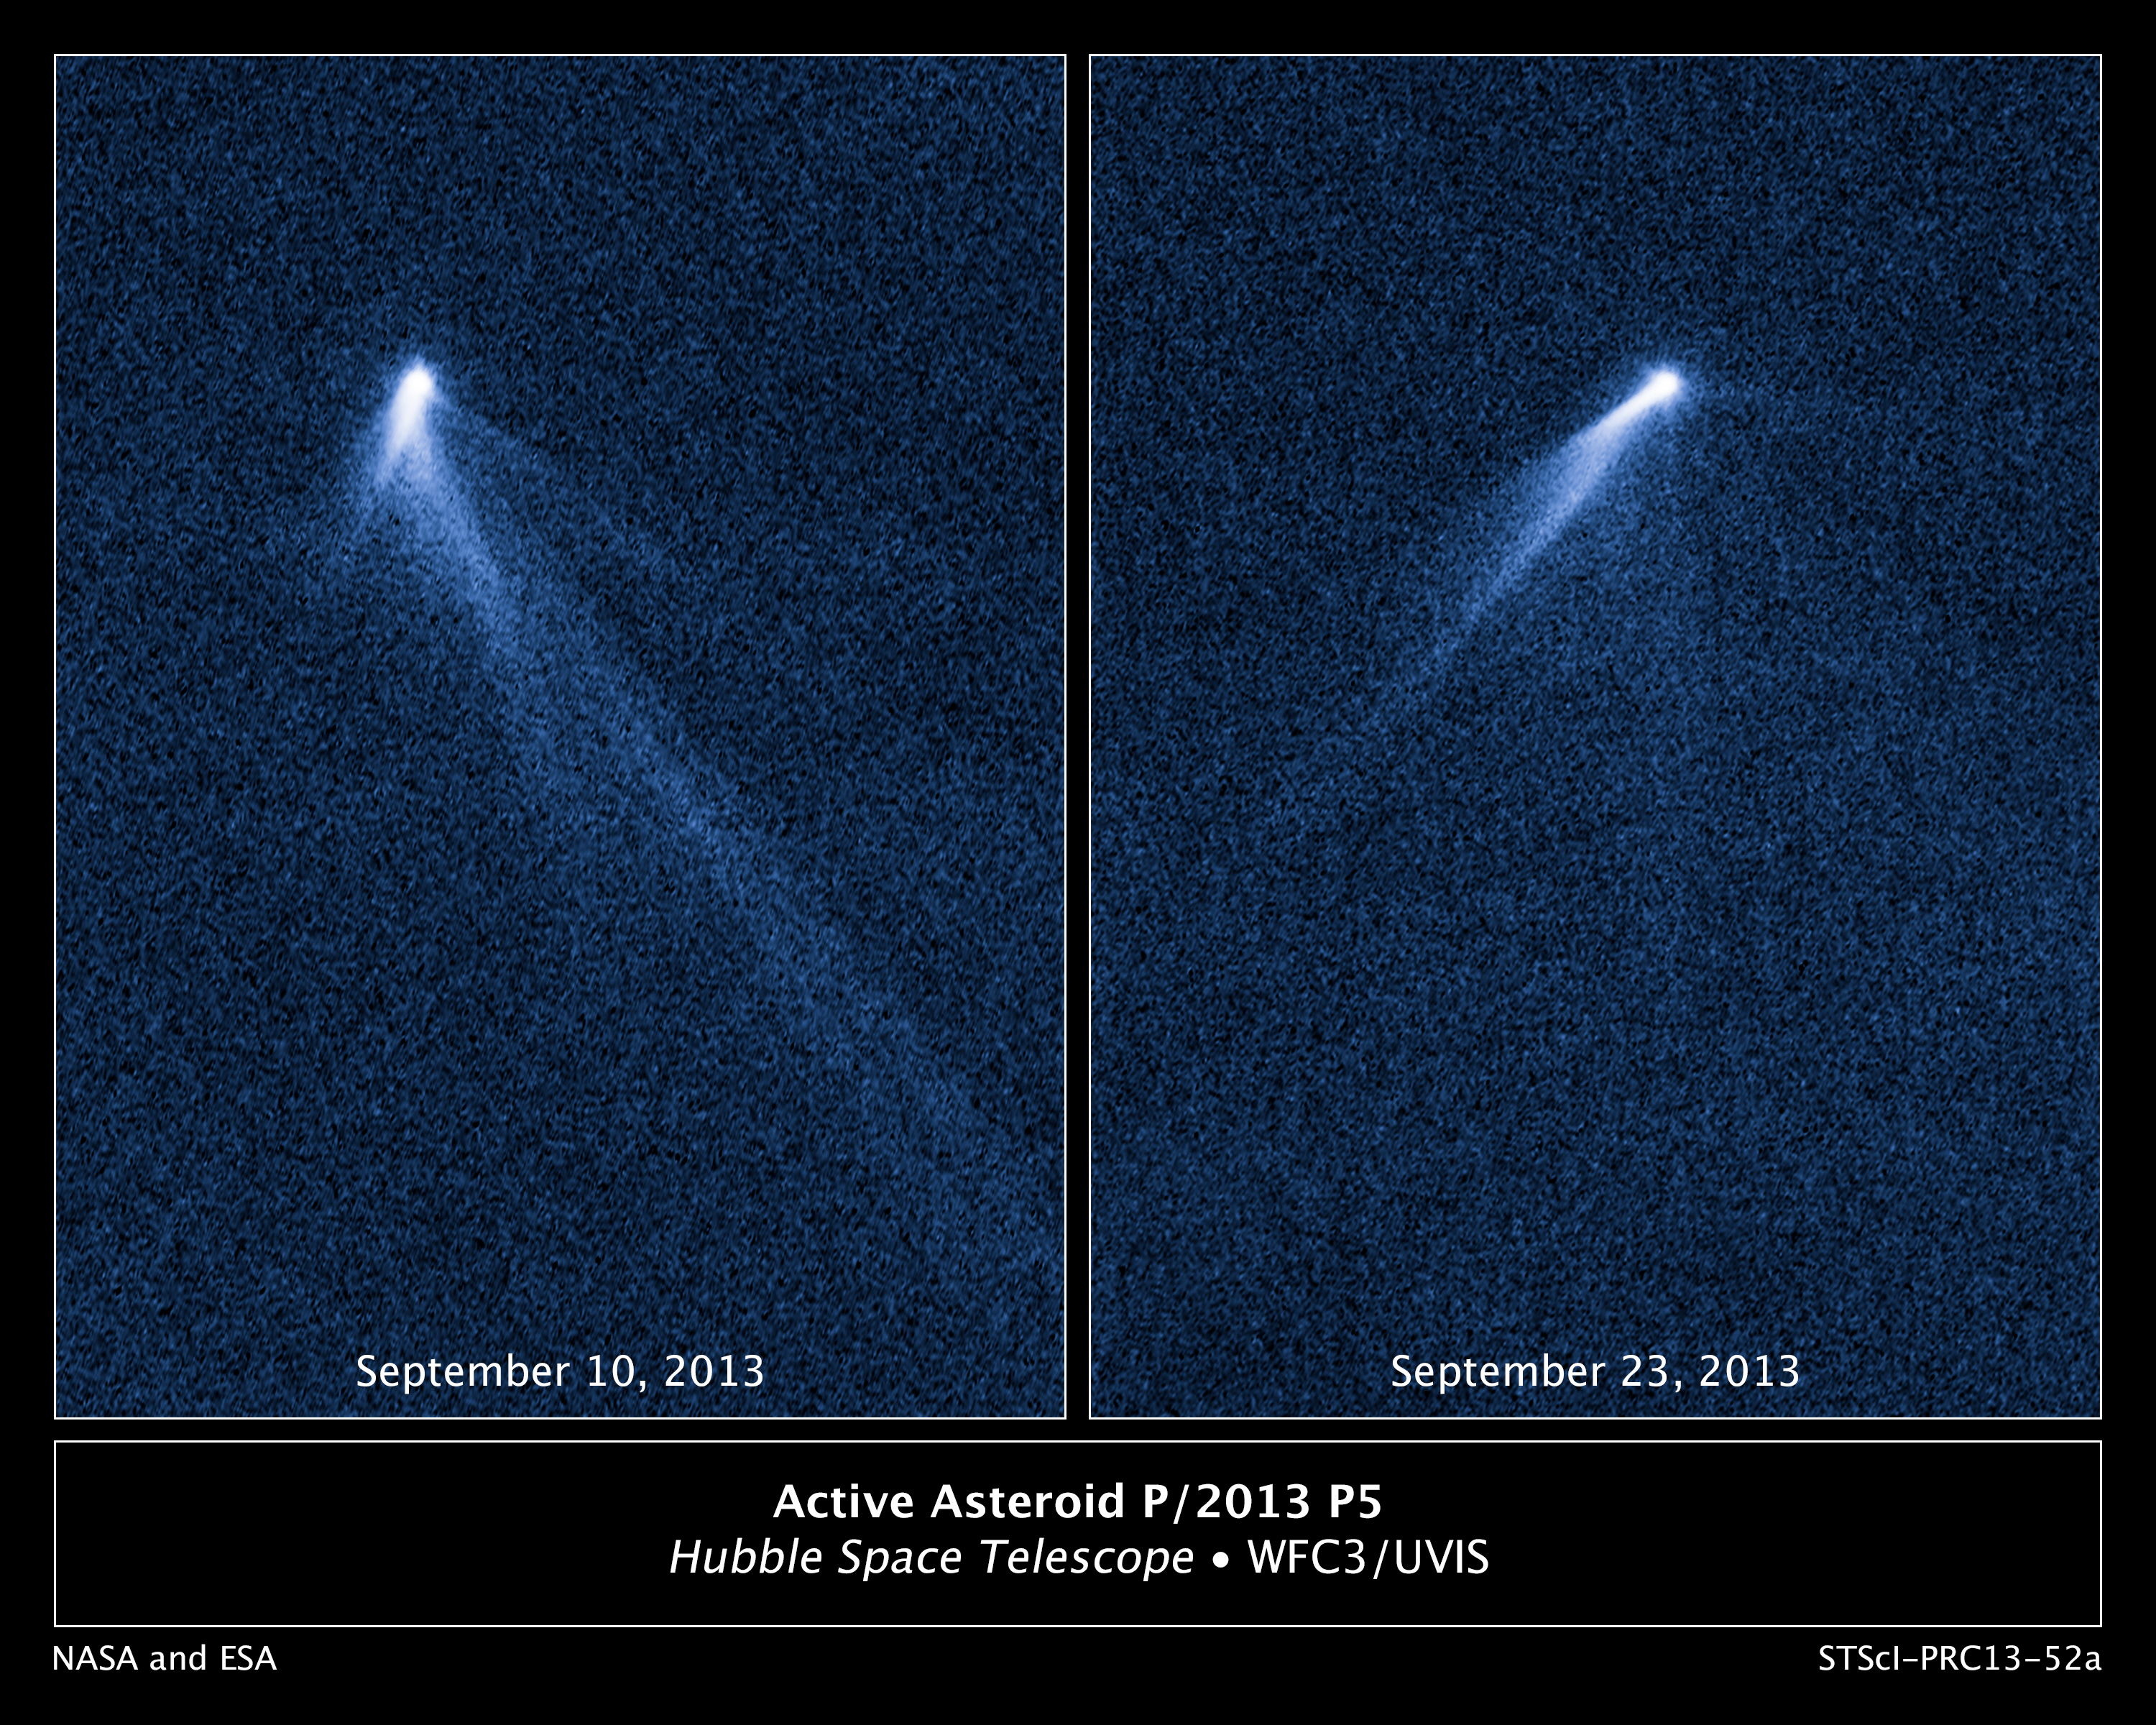 APOD: 2013 November 12 - The Unexpected Tails of Asteroid P5